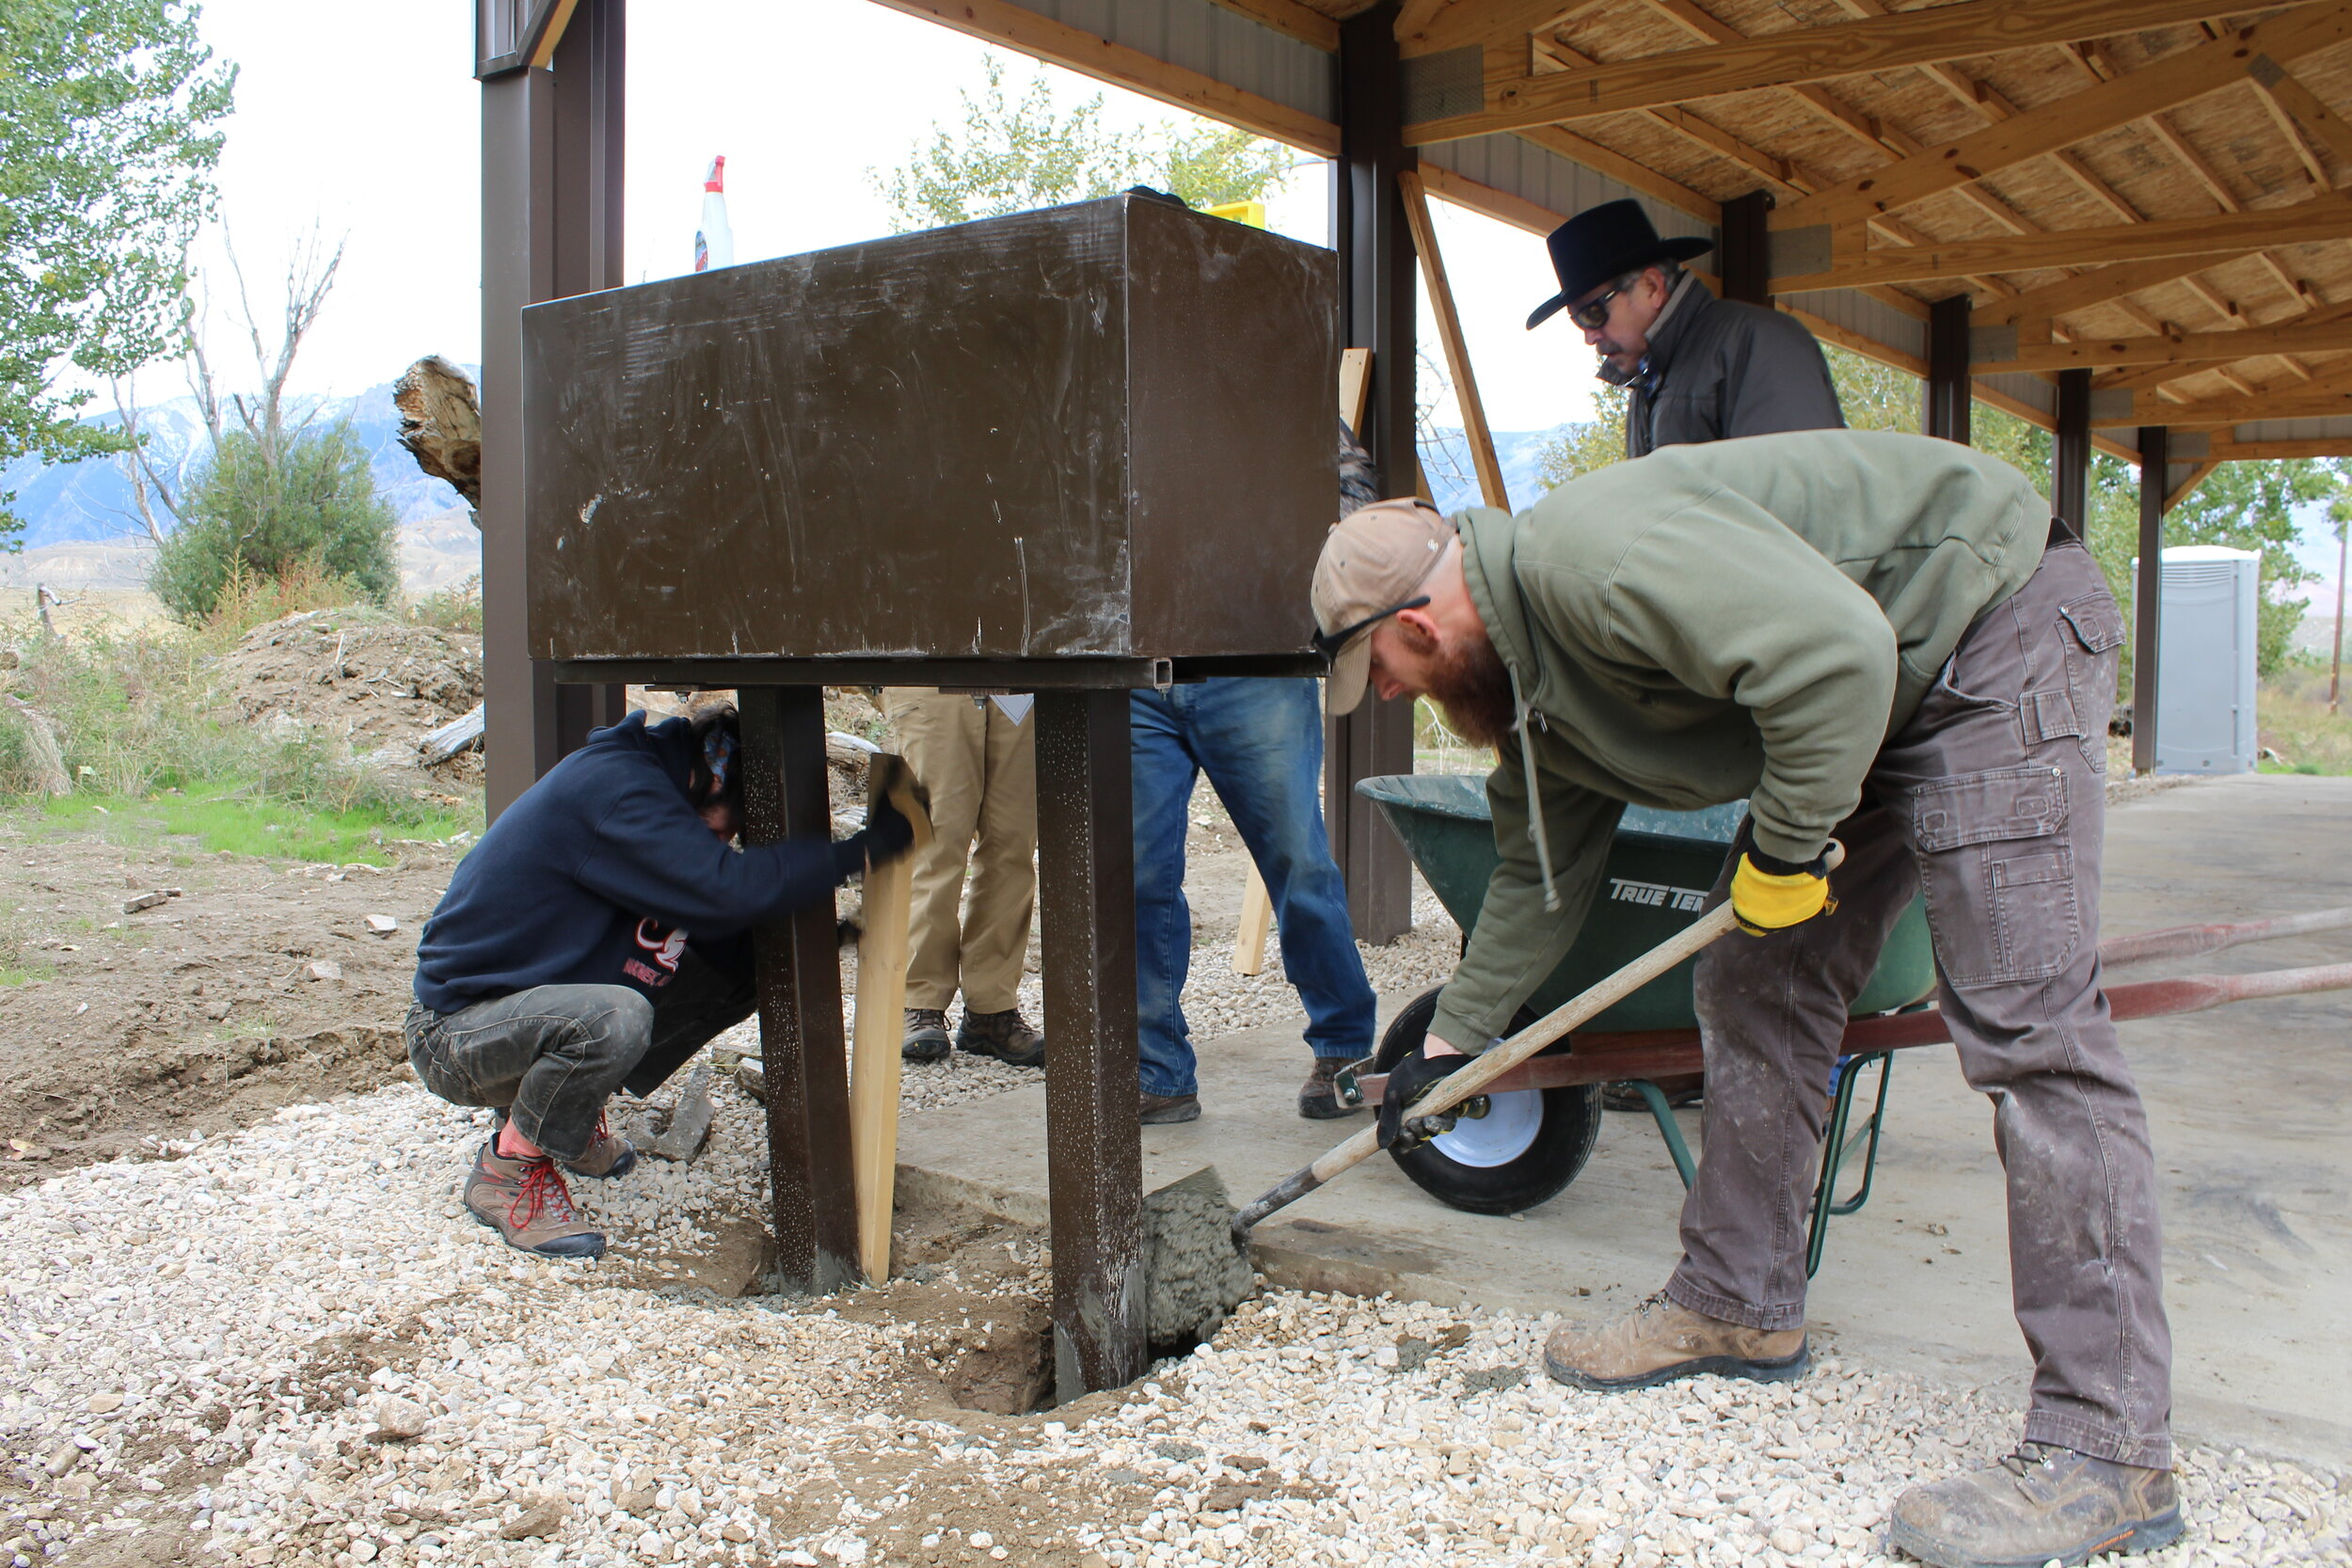 Volunteers place a bear box to keep bears alive and people safe. (Photo GYC/Emily Reed.)